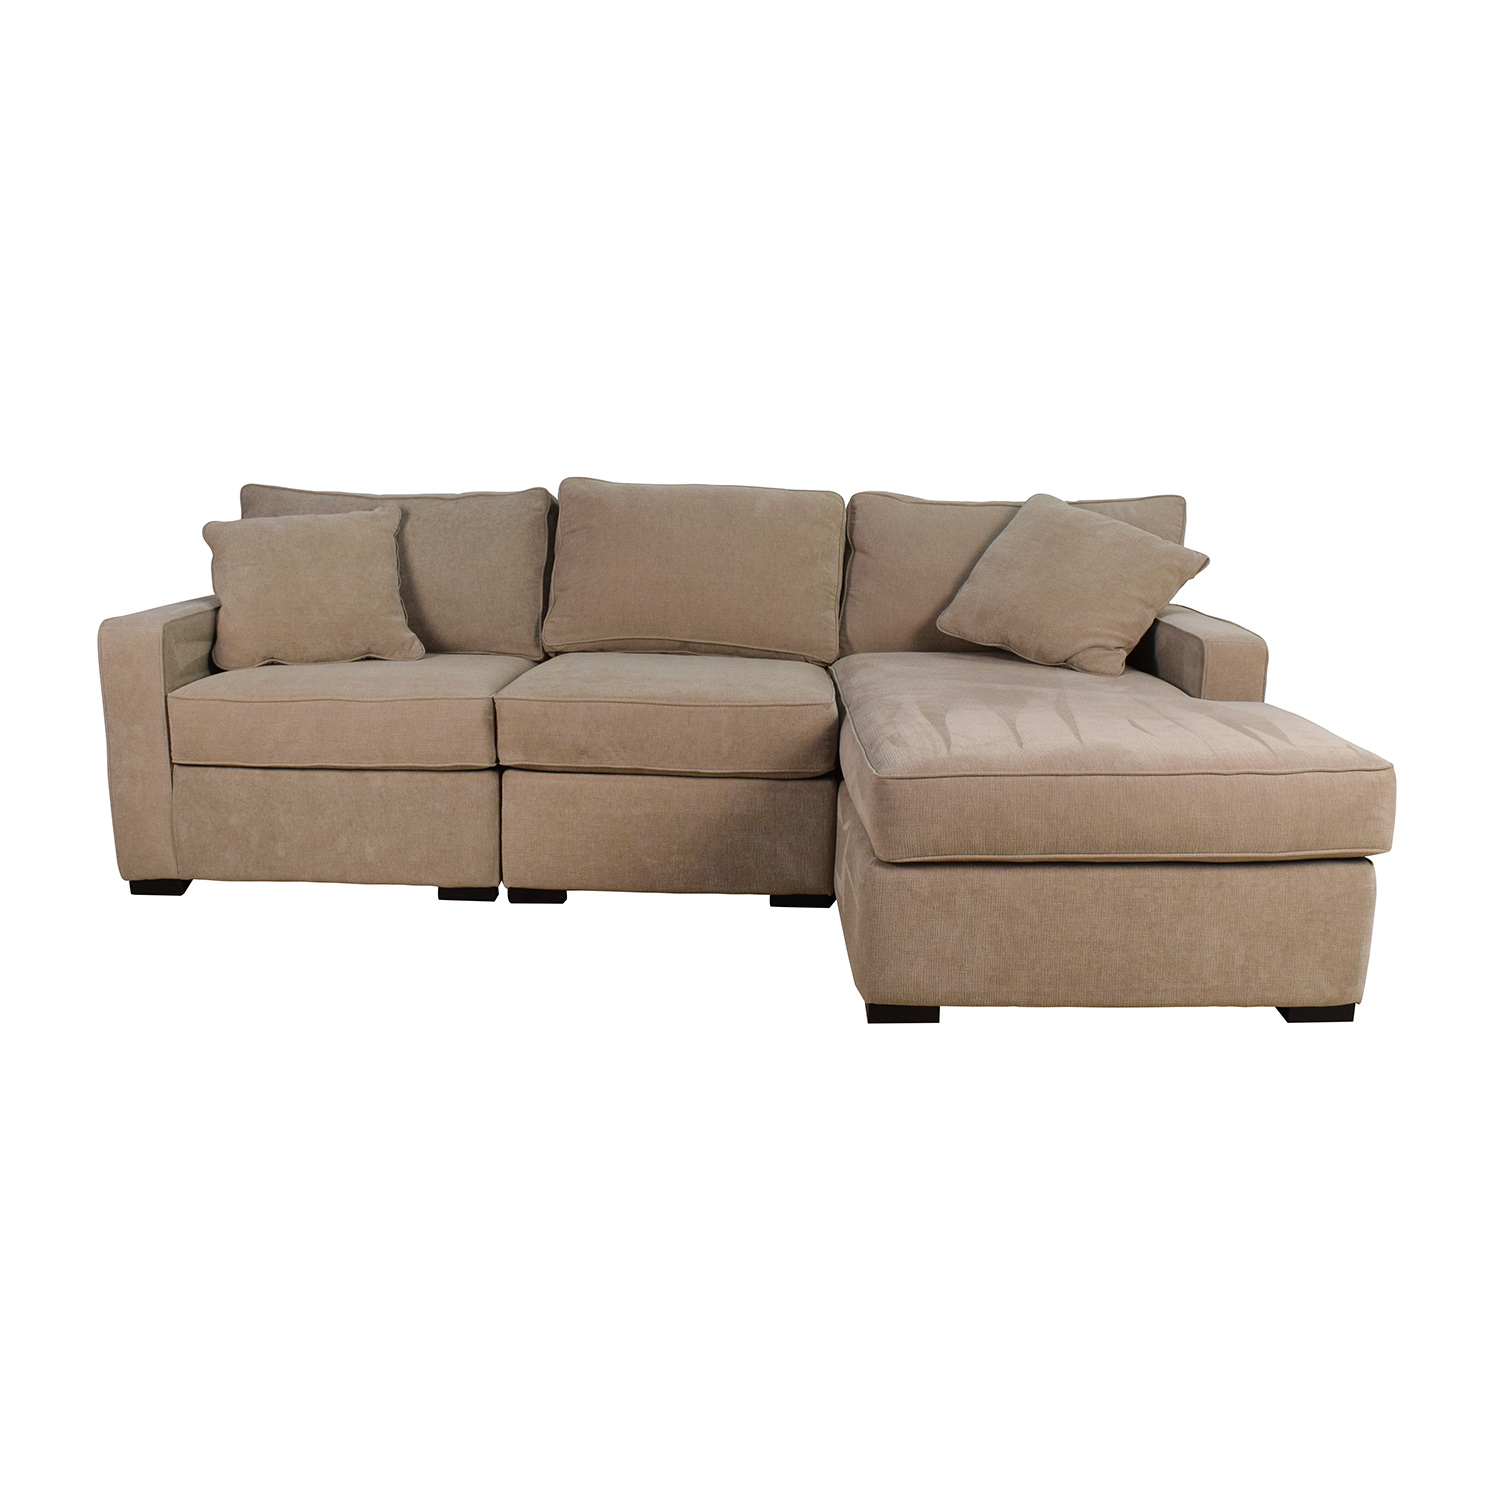 Sectionals used sectionals for sale for 3 piece leather sectional sofa with chaise